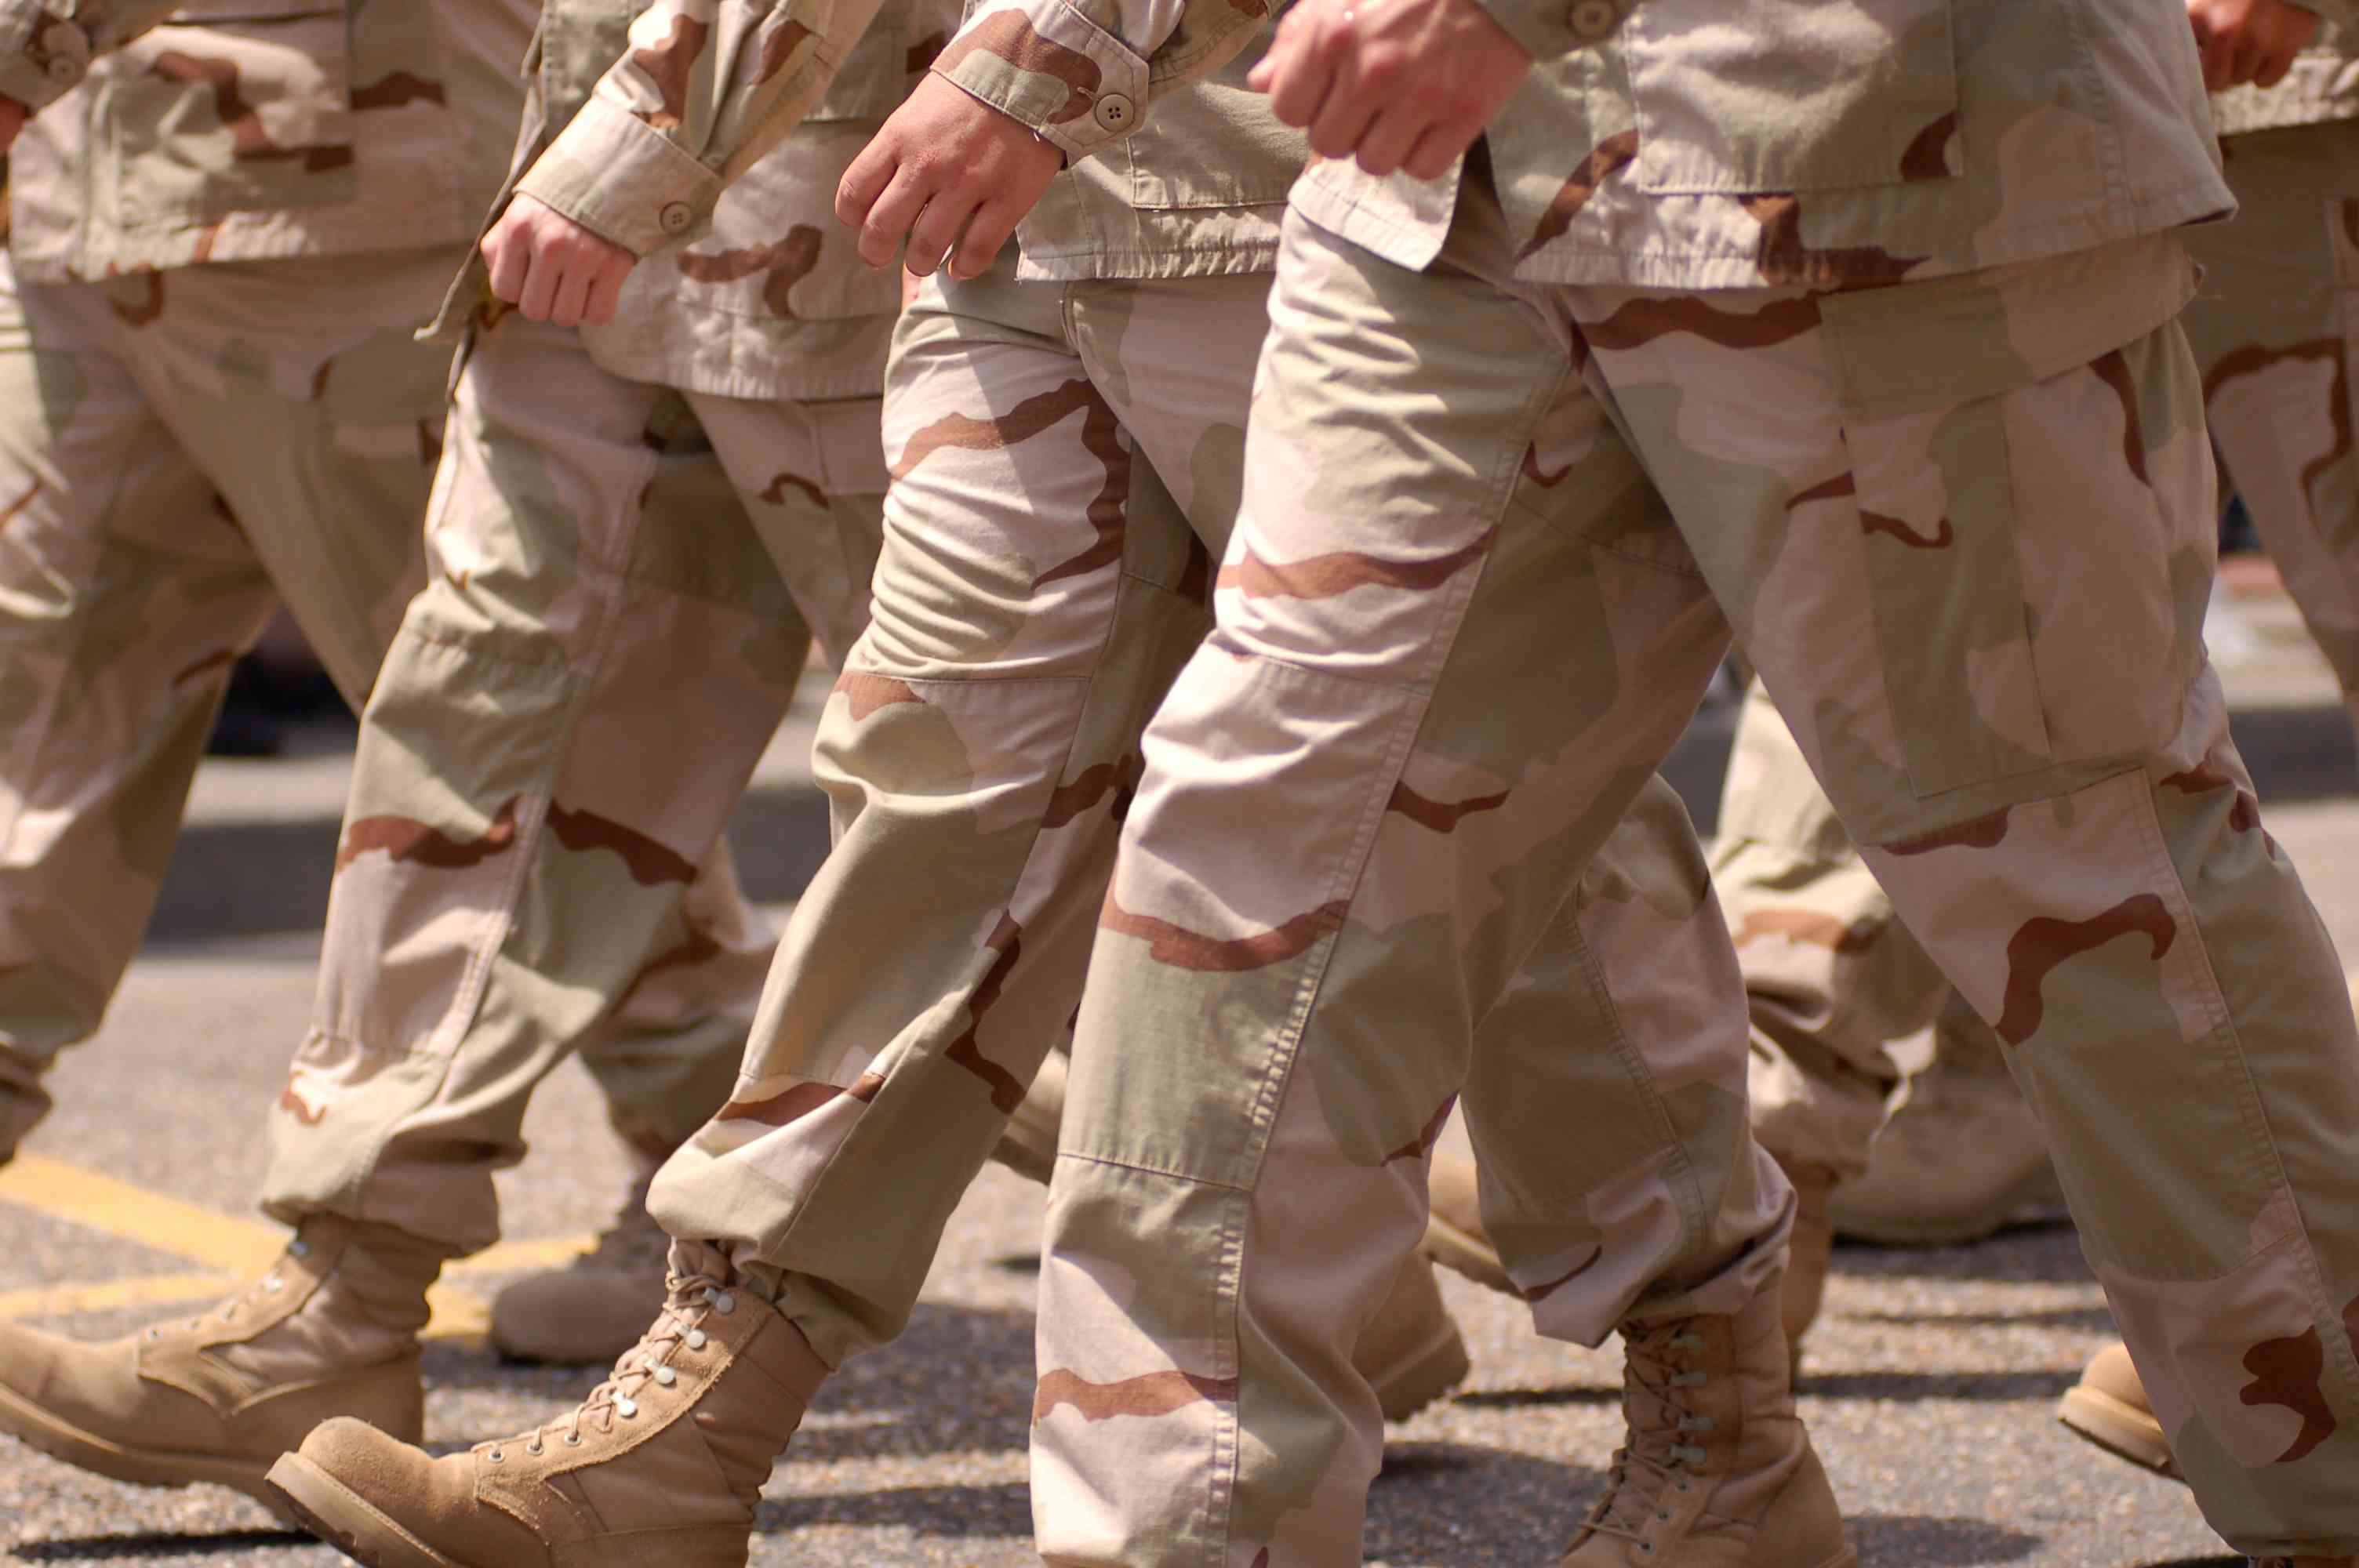 Soldiers marching in the daytime